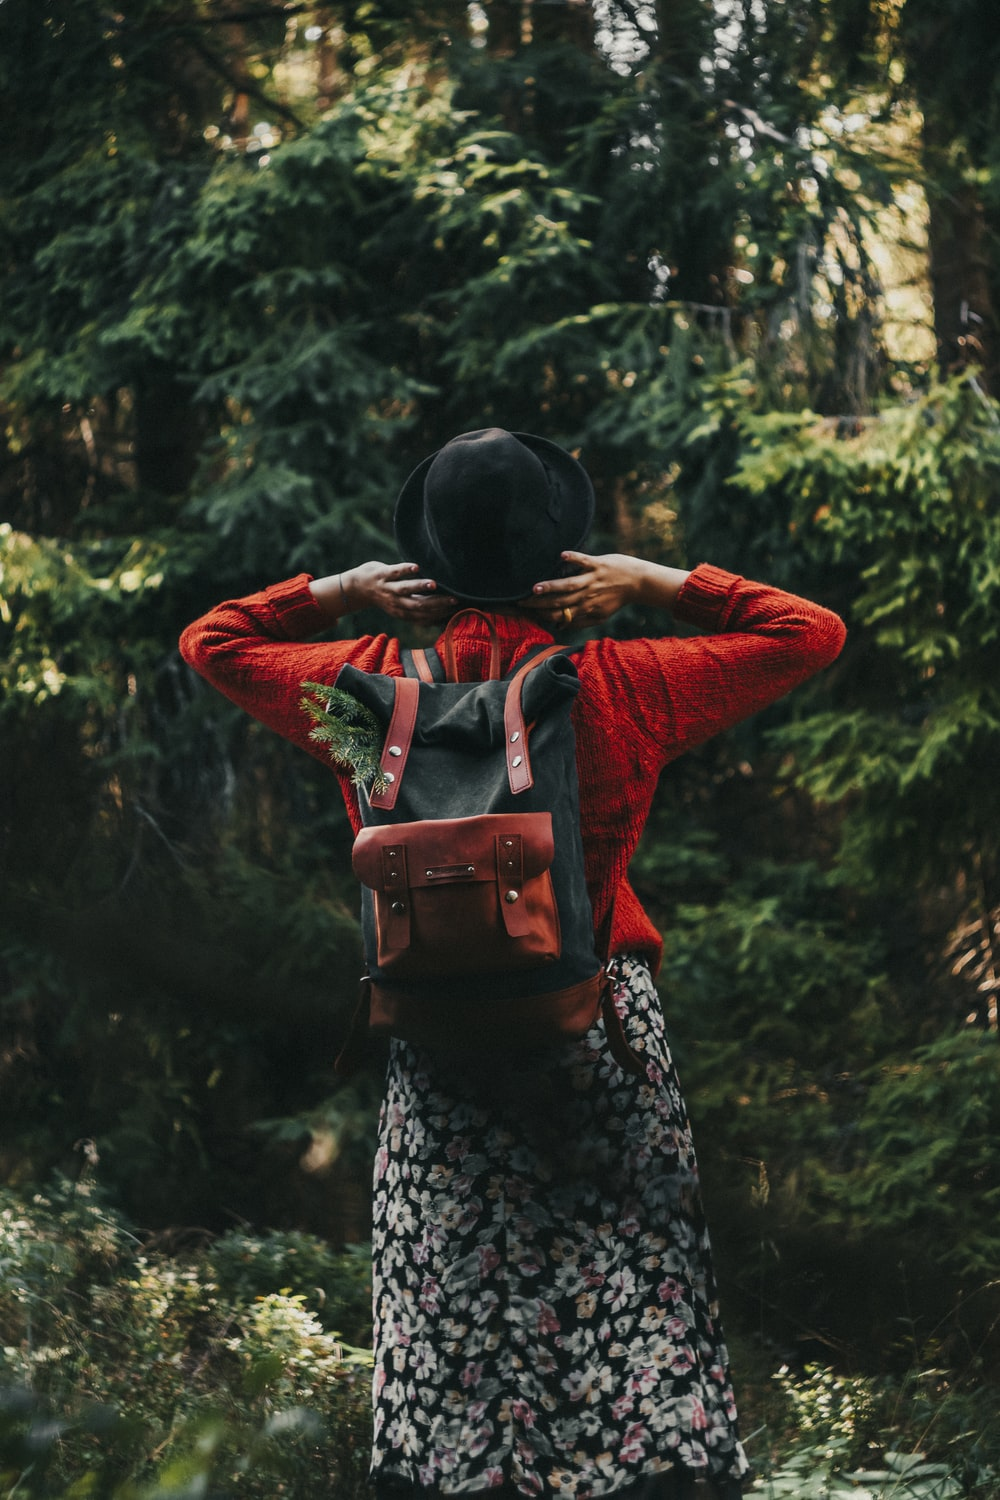 woman in red long sleeve shirt and black and white floral skirt carrying red backpack